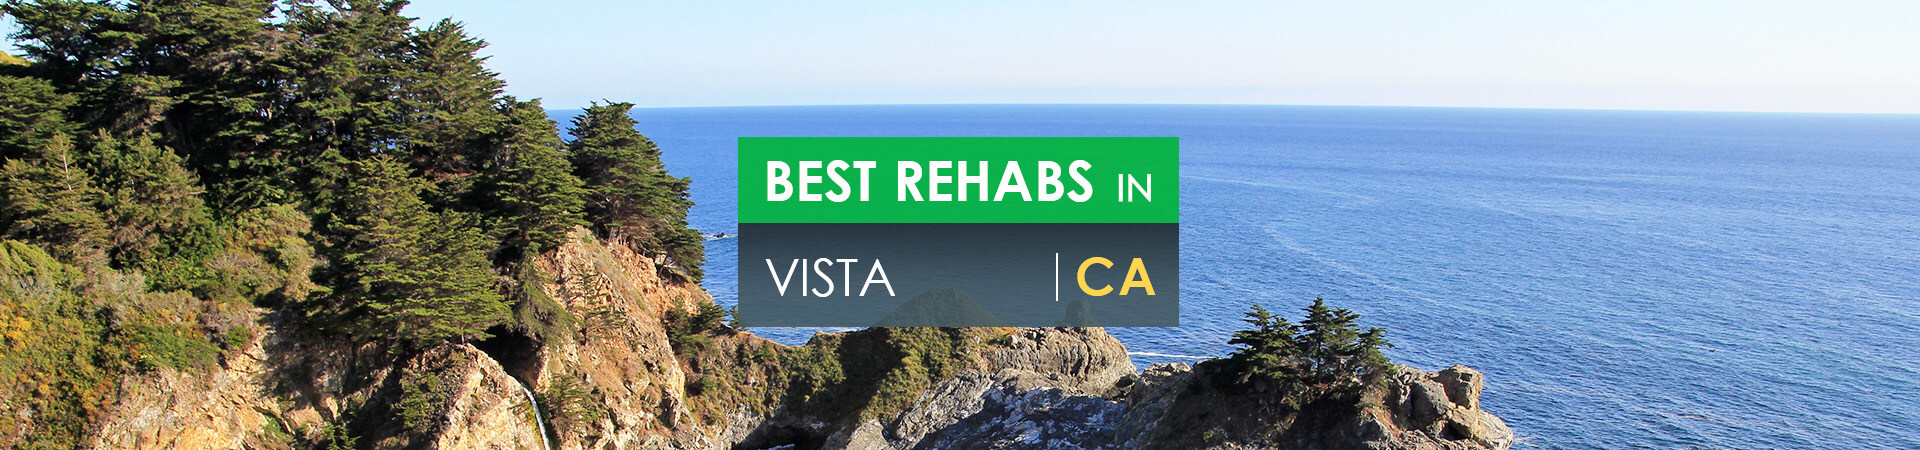 Best rehabs in Vista, CA